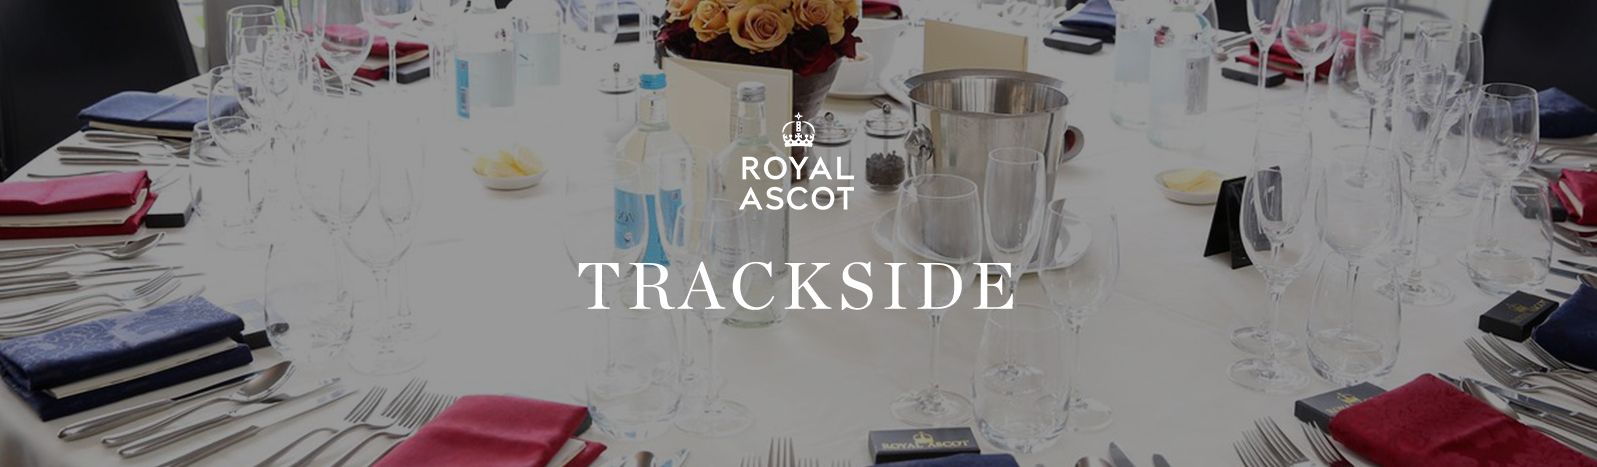 Trackside Hospitality package